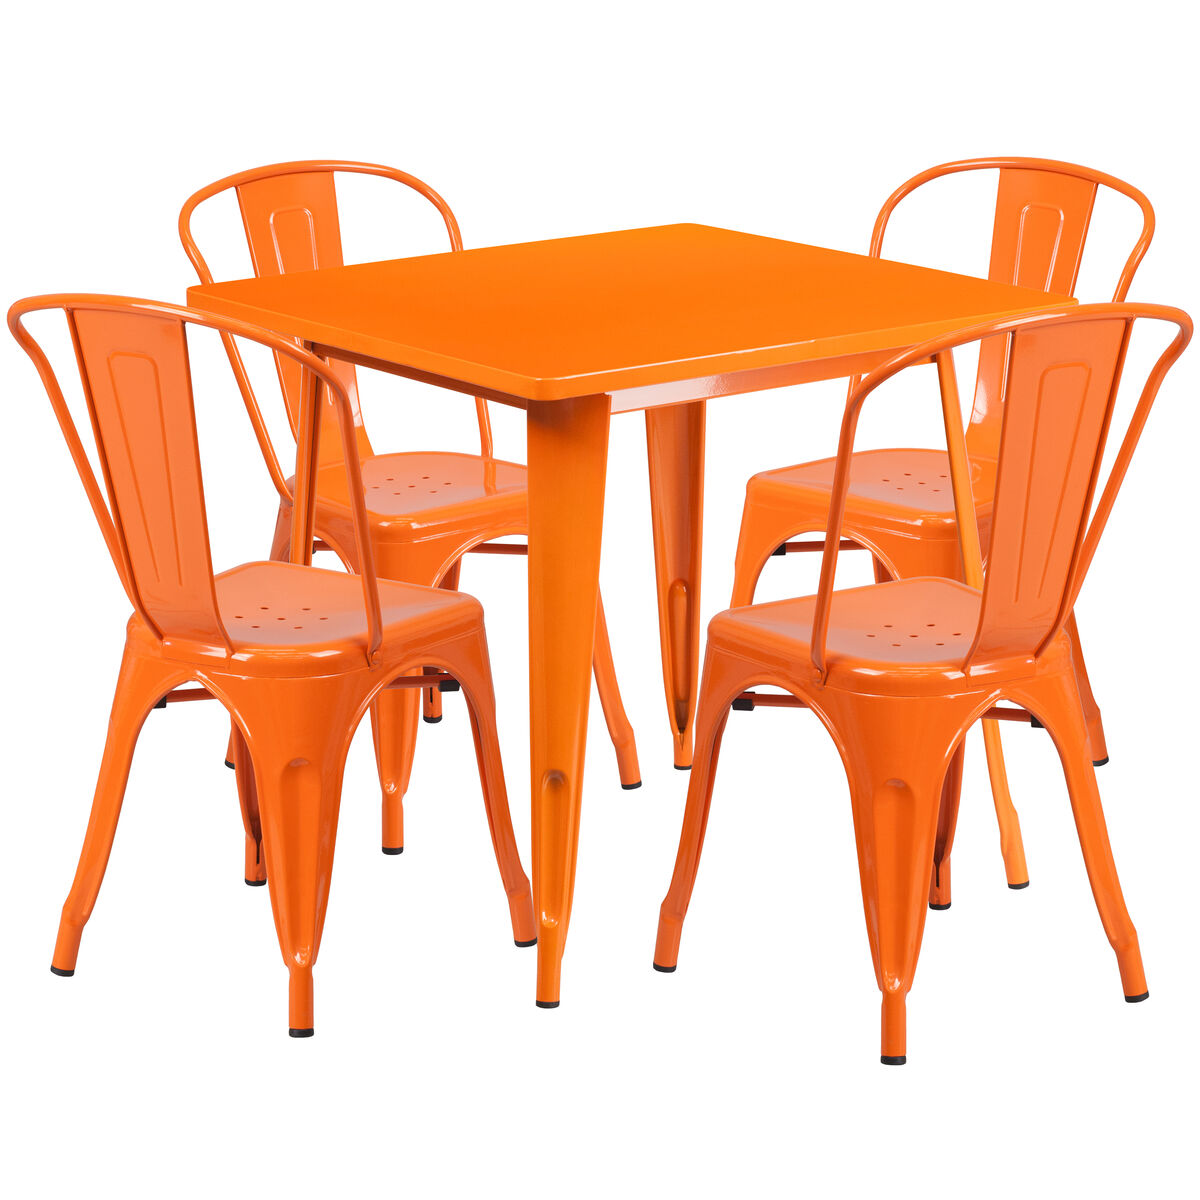 Orange Kitchen Table And Chairs: 31.5'' Square Orange Metal Indoor-Outdoor Table Set With 4